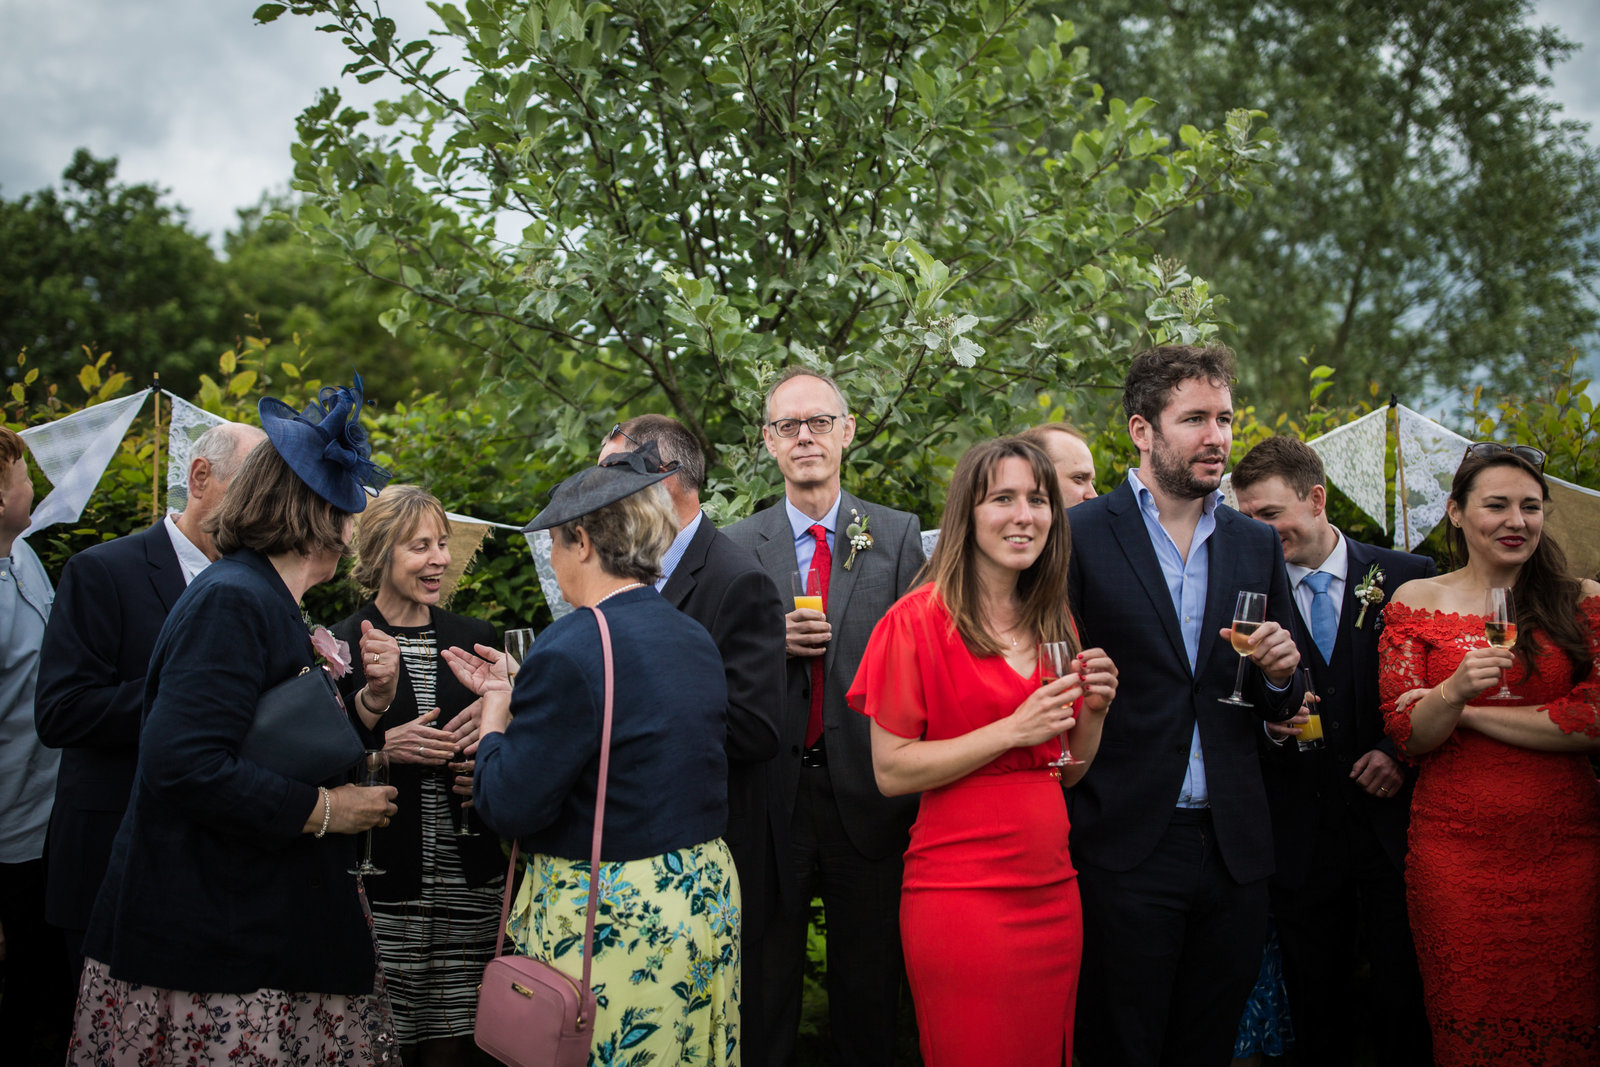 Amongst the happy faces and chatter at a wedding the grooms father is stood tall and staring with a blank face at the Norfolk photographer.